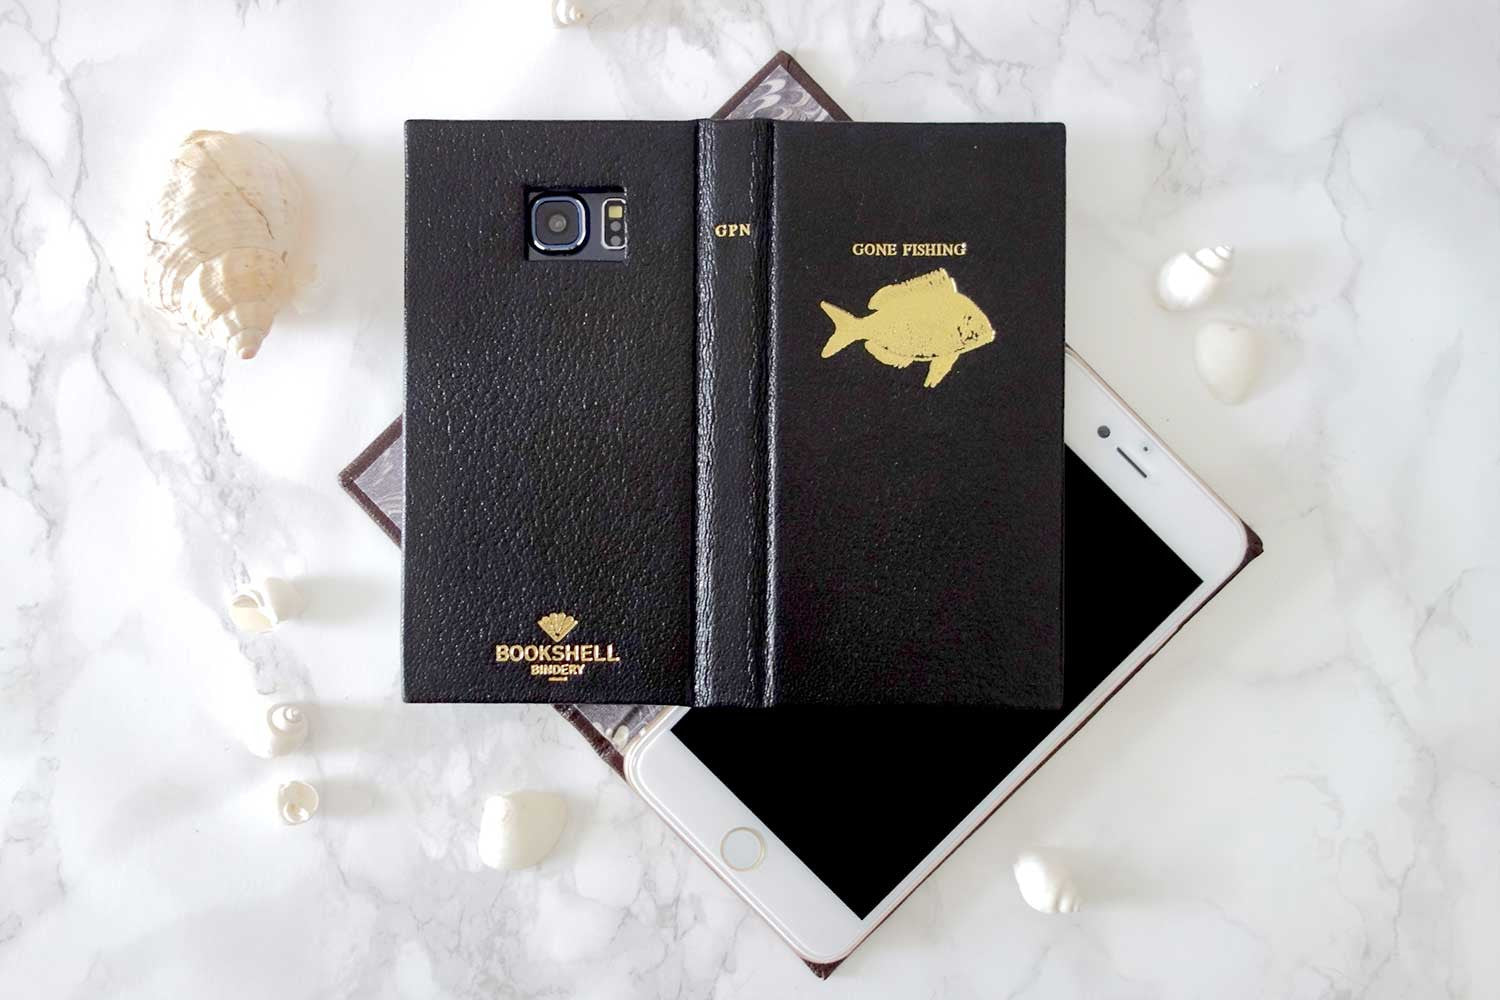 Luxury leather phone cases in black leather with a fish on the cover from Bookshell